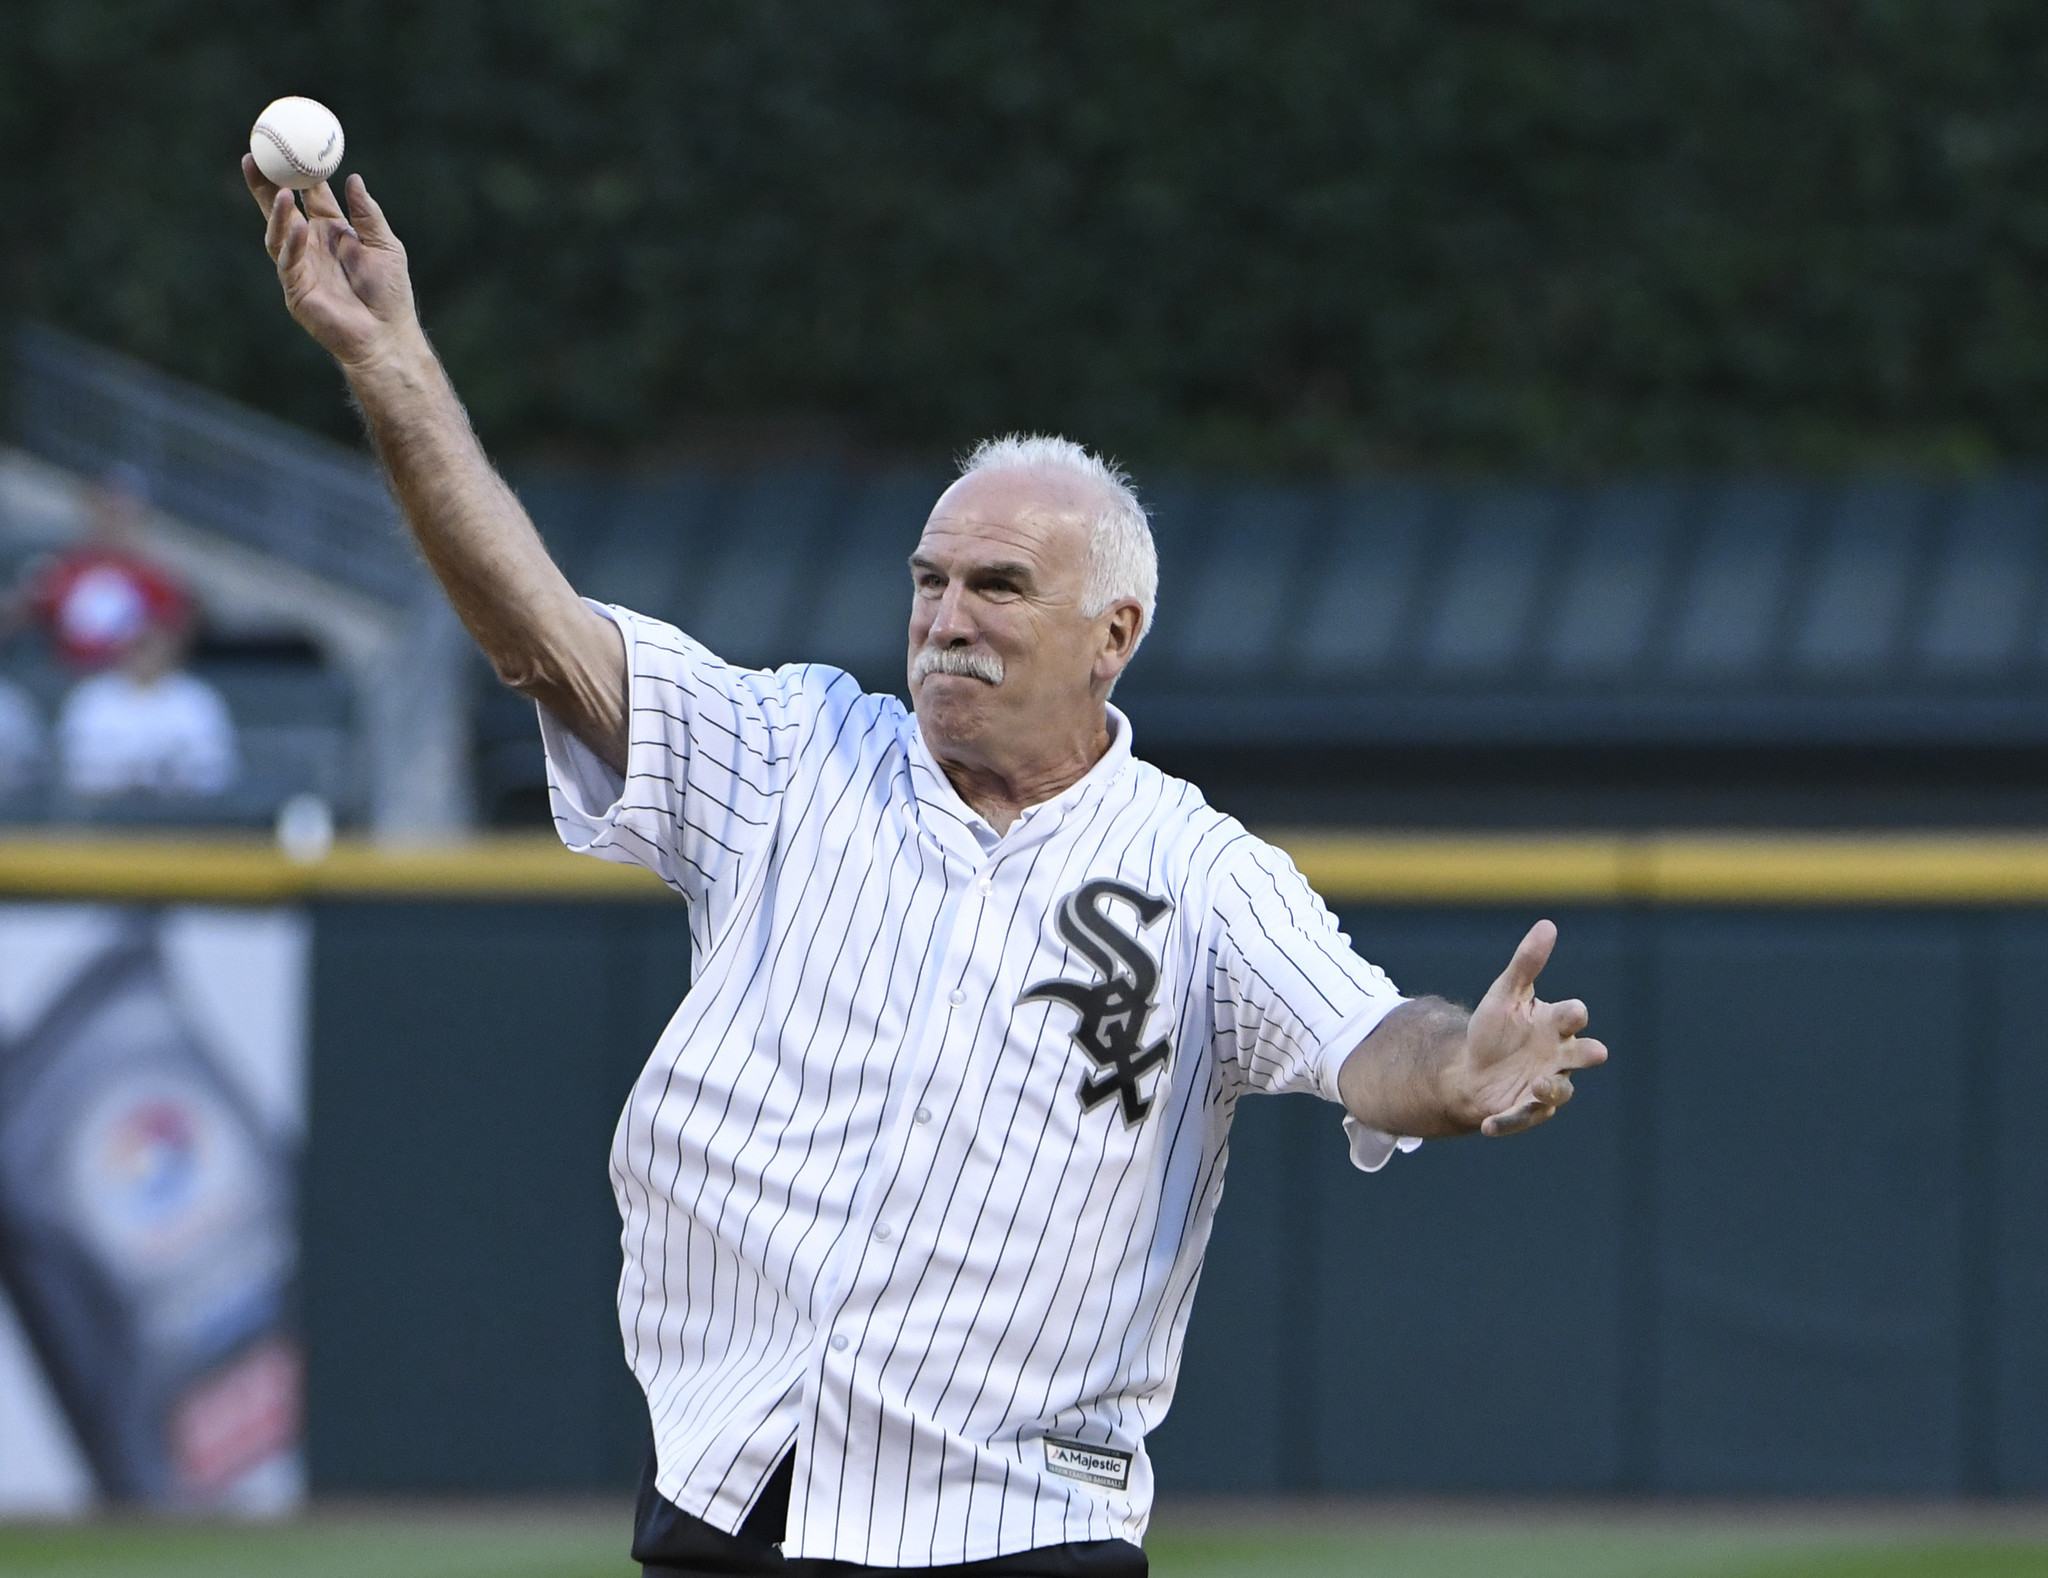 Ct-joel-quenneville-first-pitch-white-sox-spt-0824-20170823